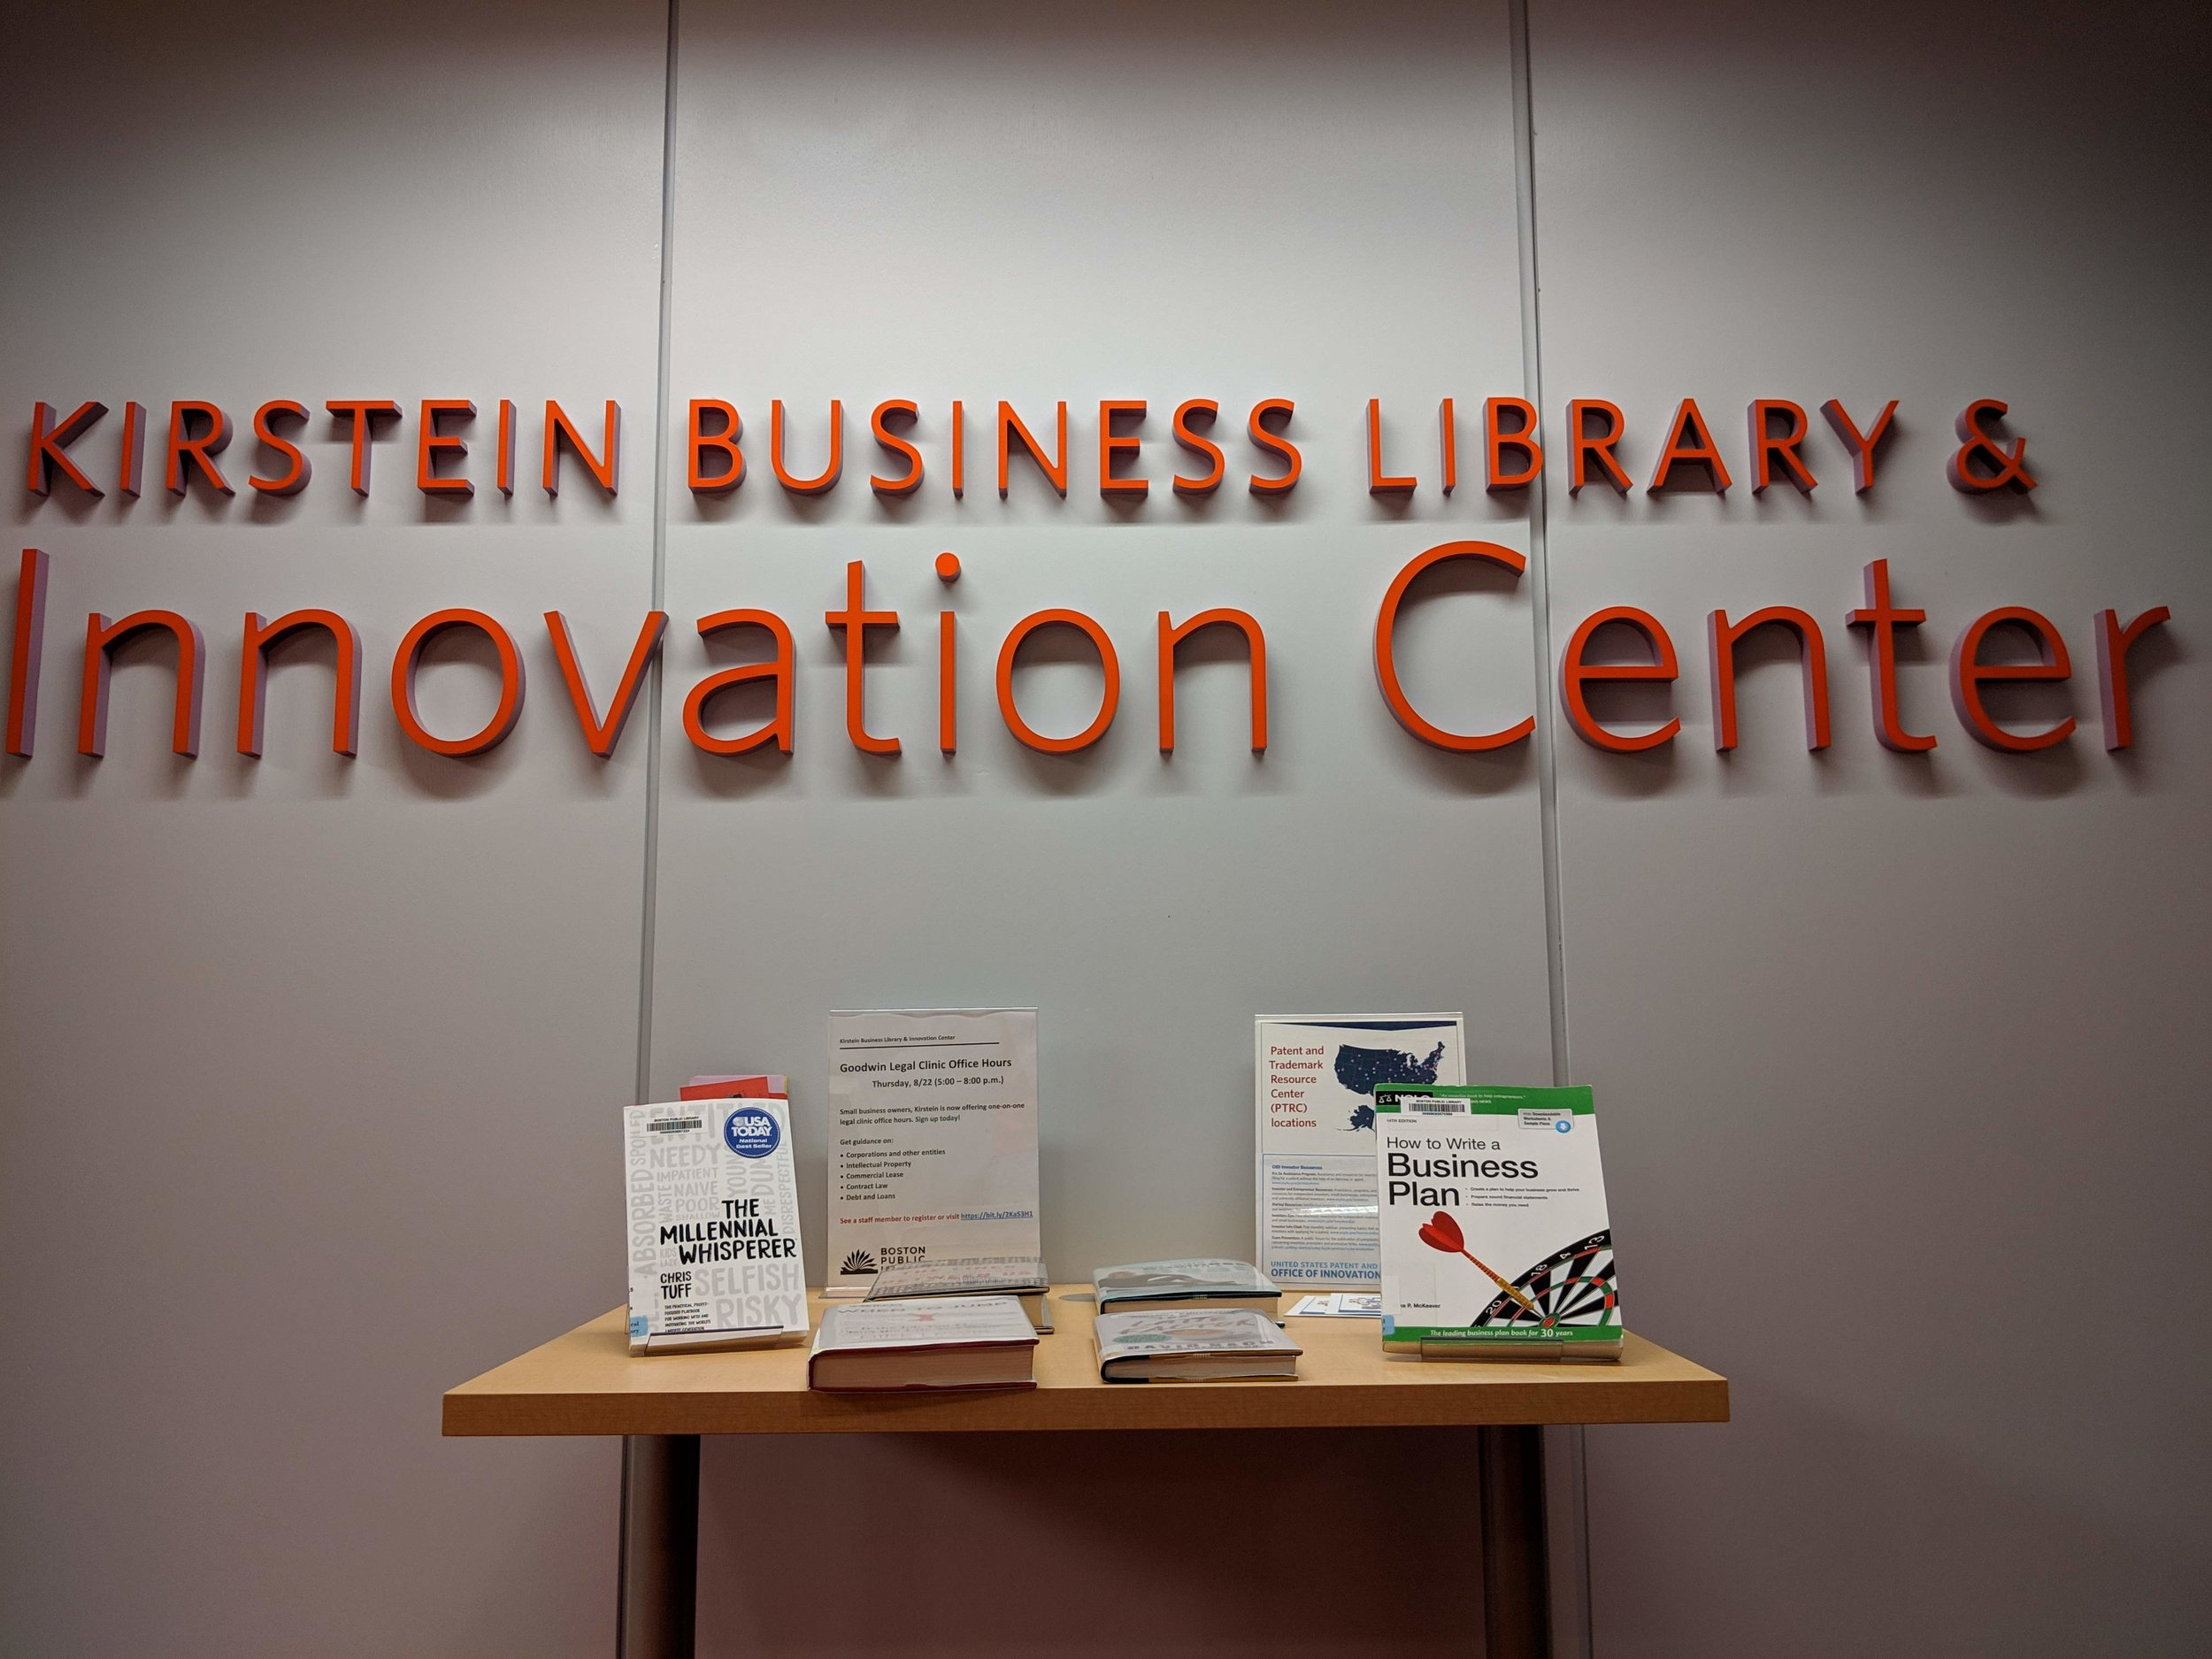 We can't say enough about the amazing resources and services available at the Kirstein Business Library and Innovation Center.